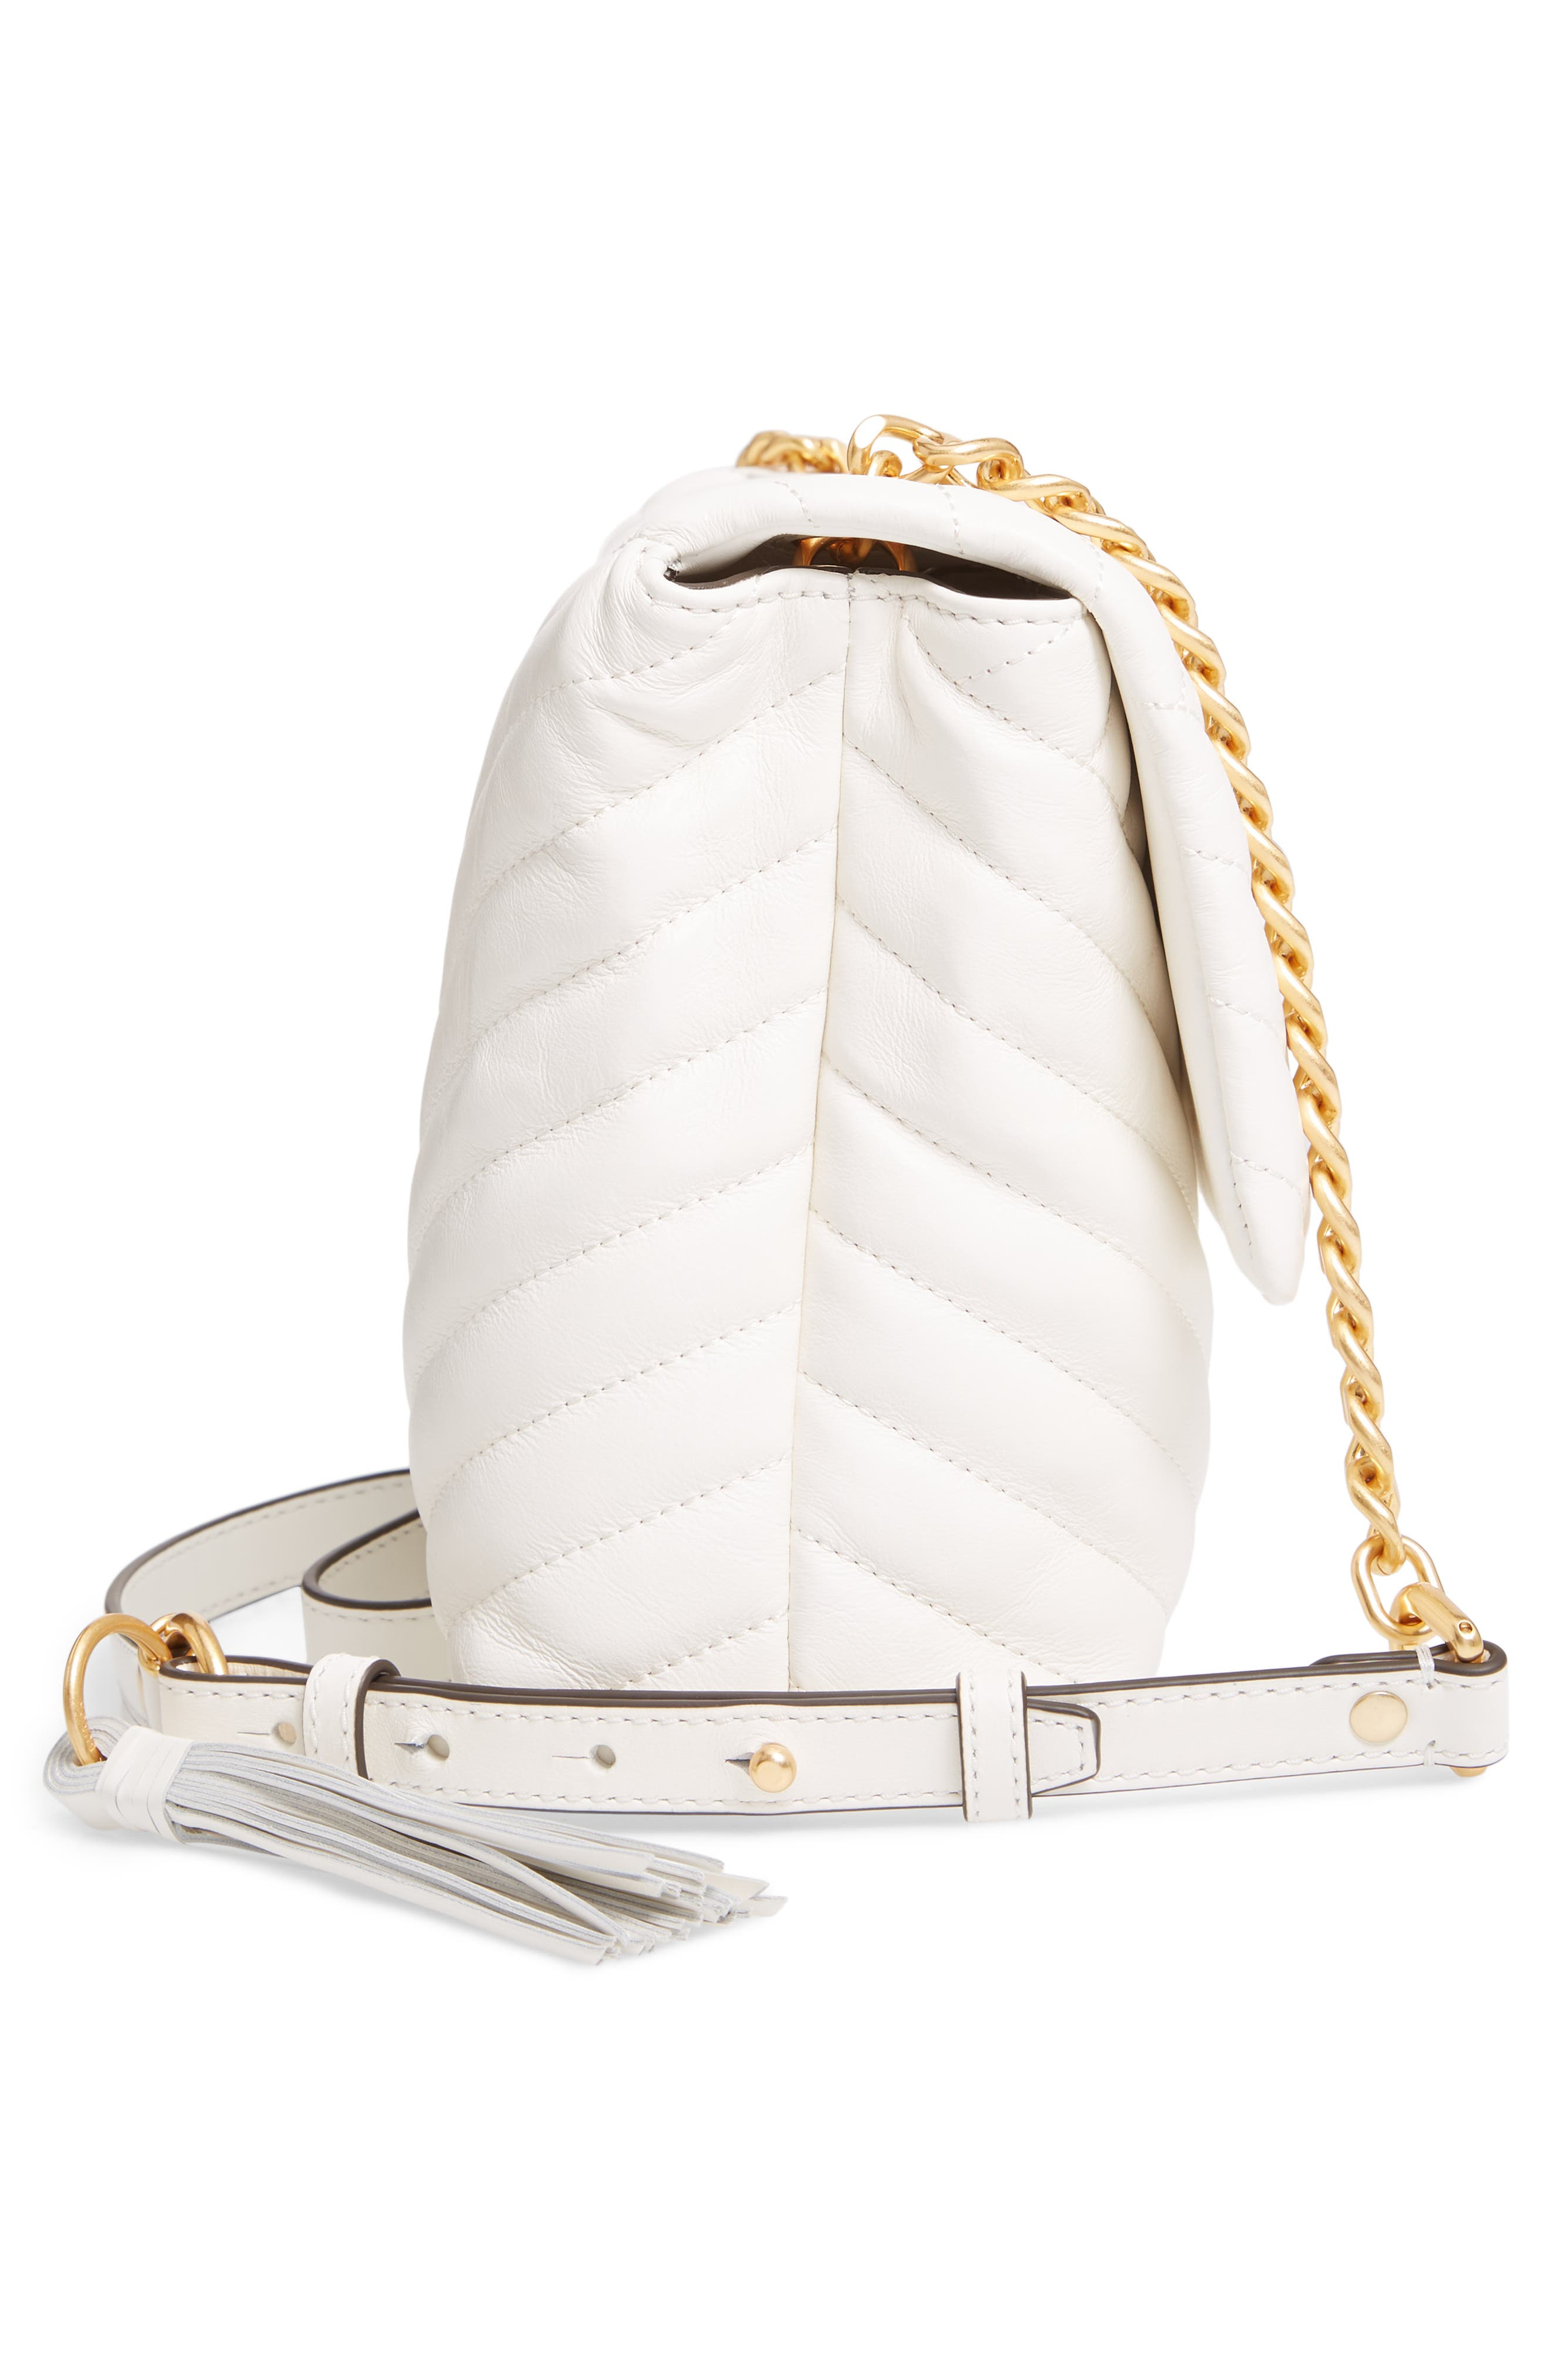 TORY BURCH, Kira Chevron Quilted Leather Shoulder Bag, Alternate thumbnail 6, color, NEW IVORY